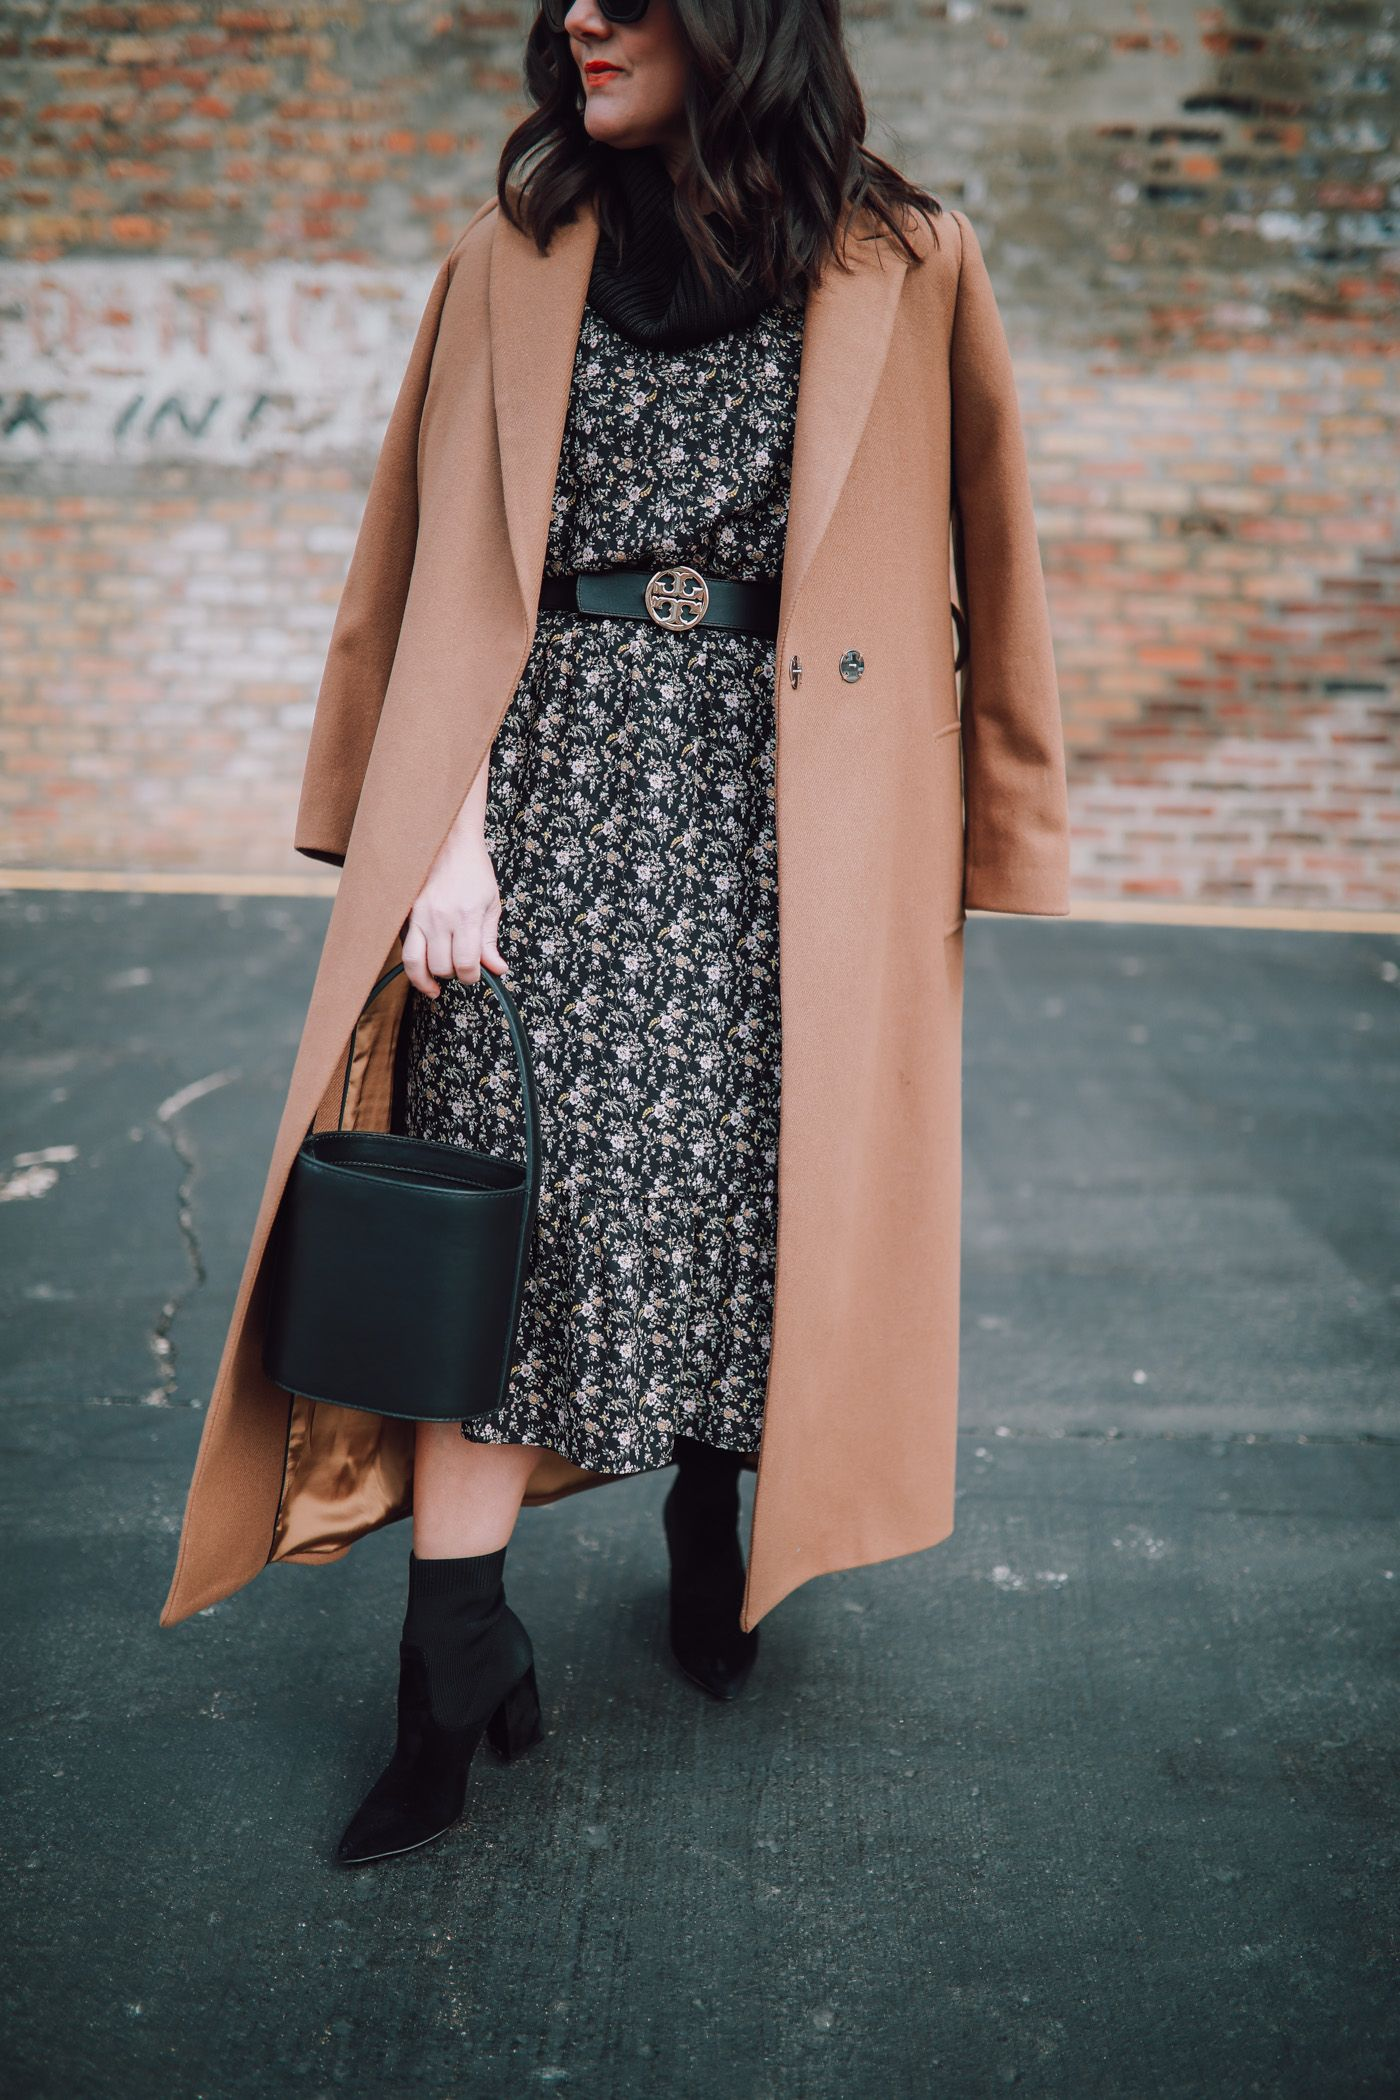 How To Style Your Summer Dress For Winter Giveaway Winter Dresses Summer Dresses Fall Winter Outfits [ 2100 x 1400 Pixel ]